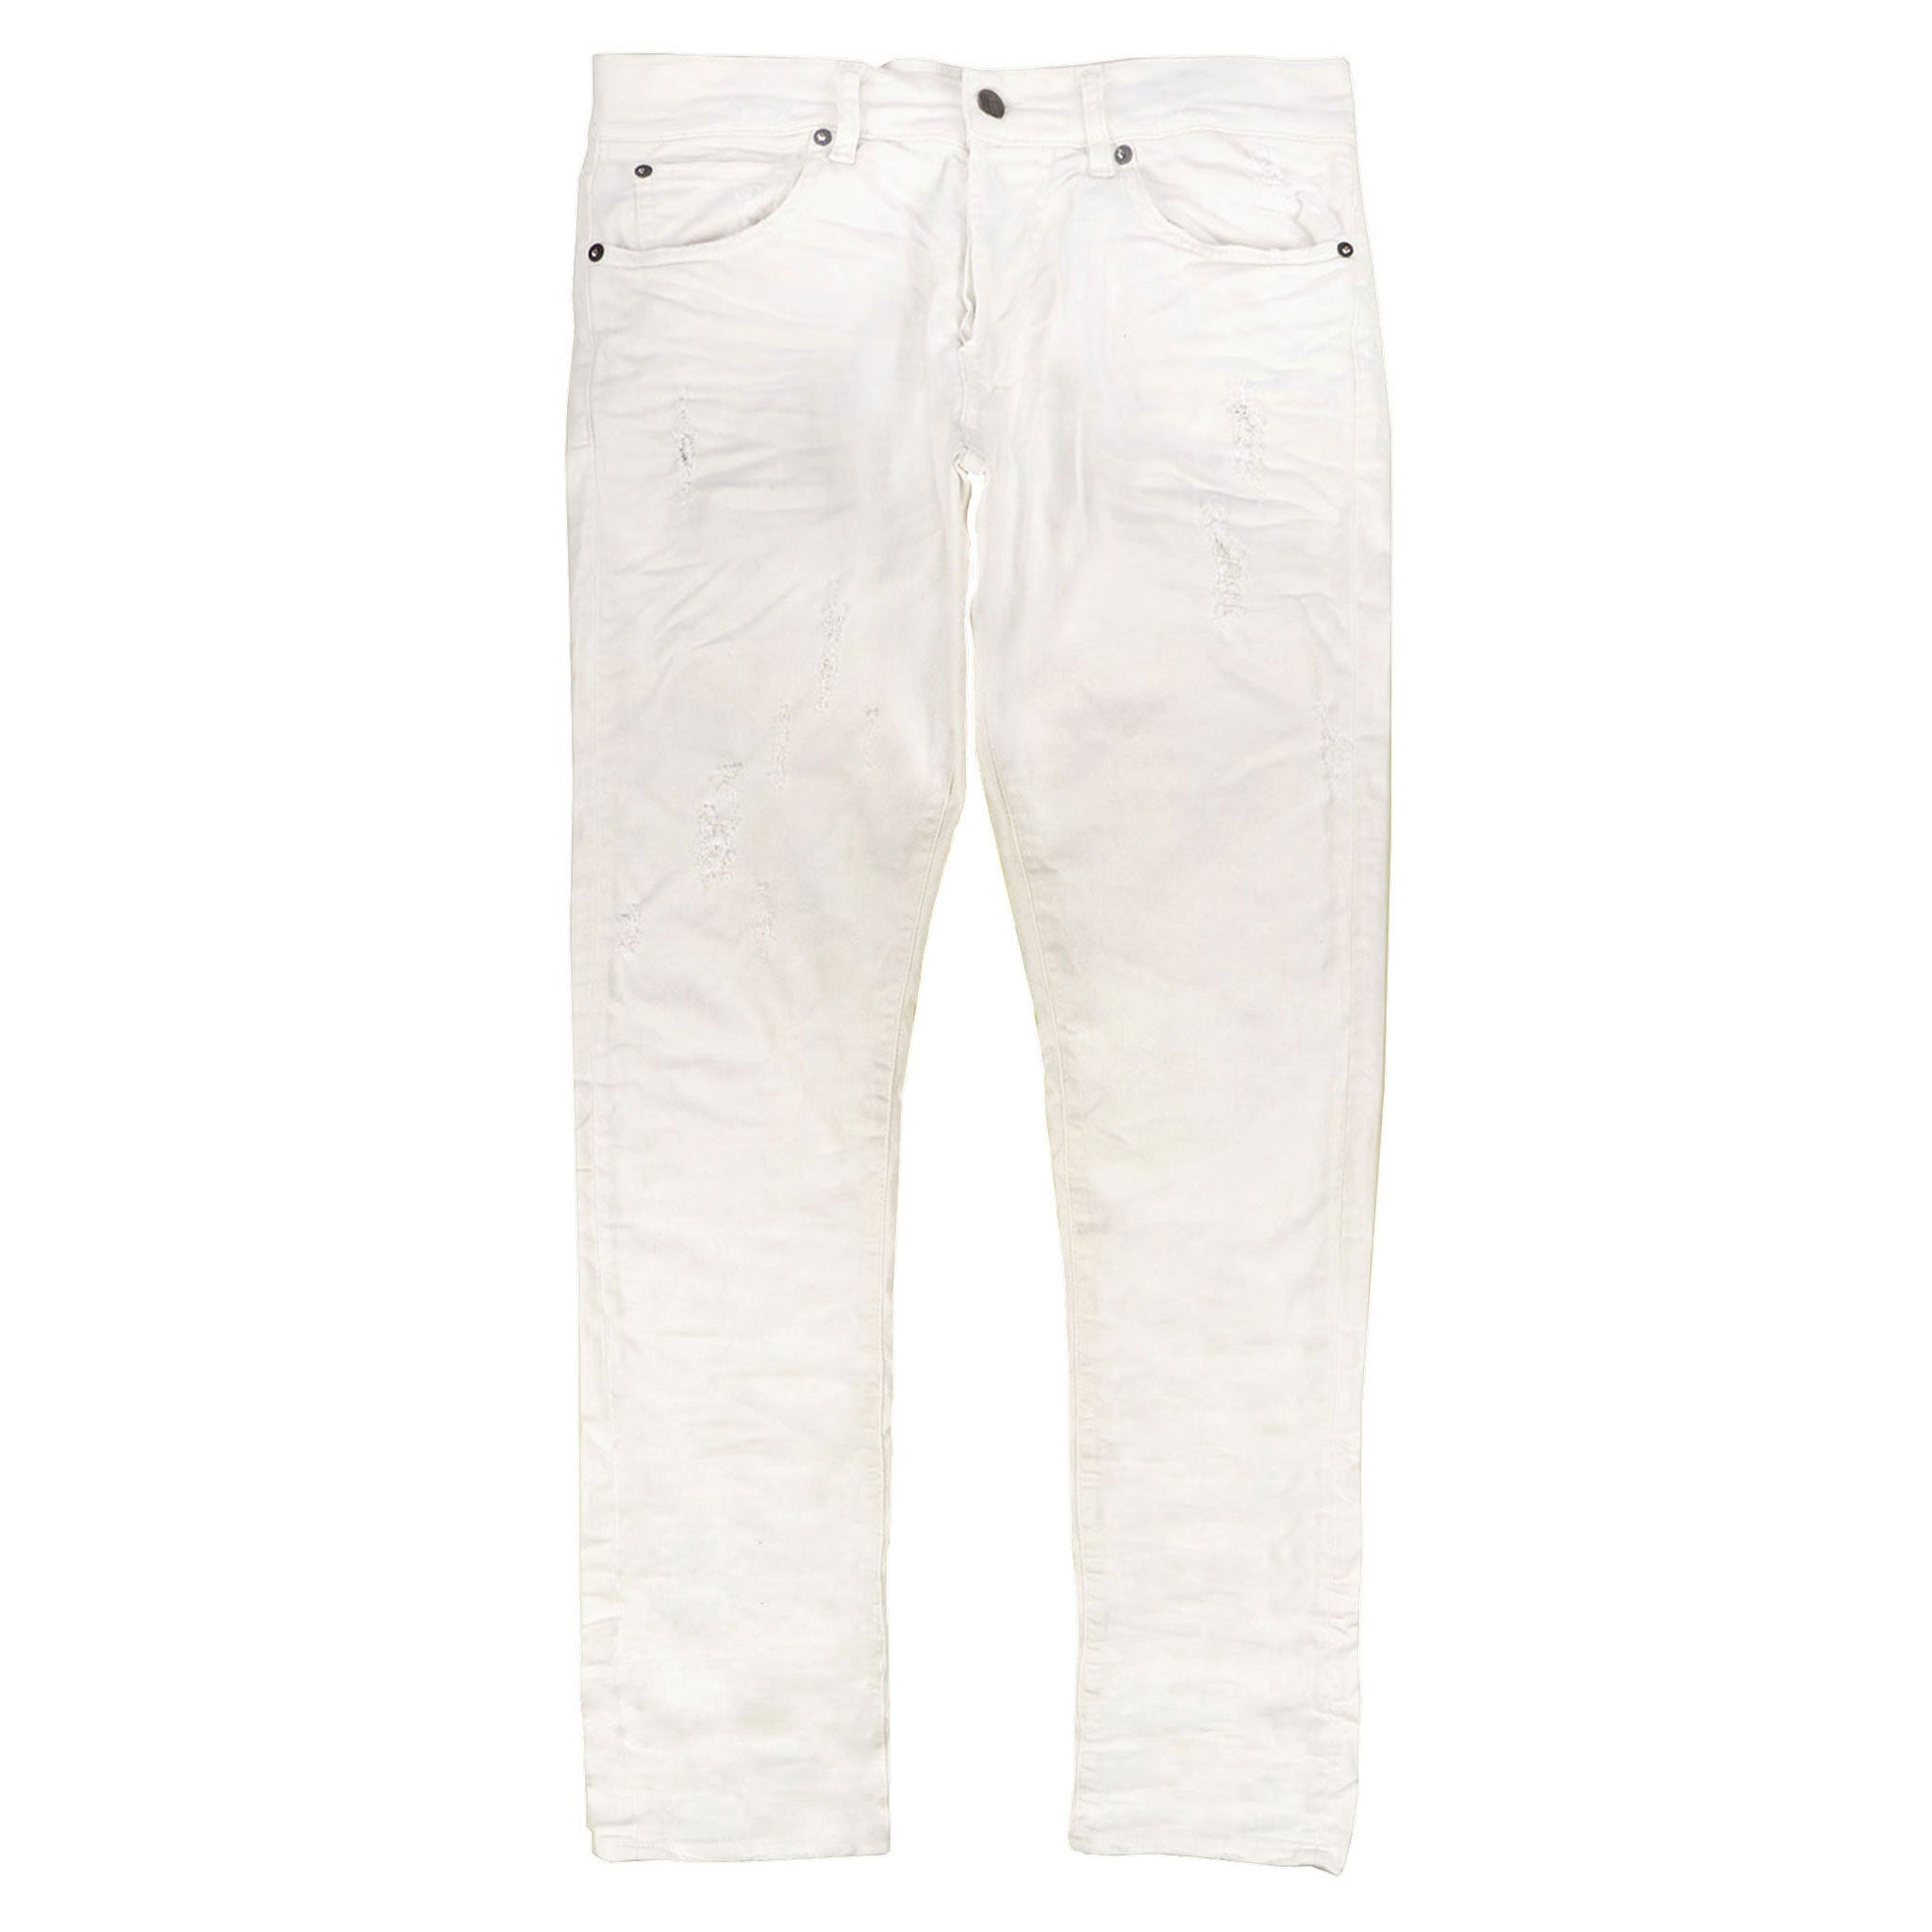 The.NIM slim fit Jeans in Weiß